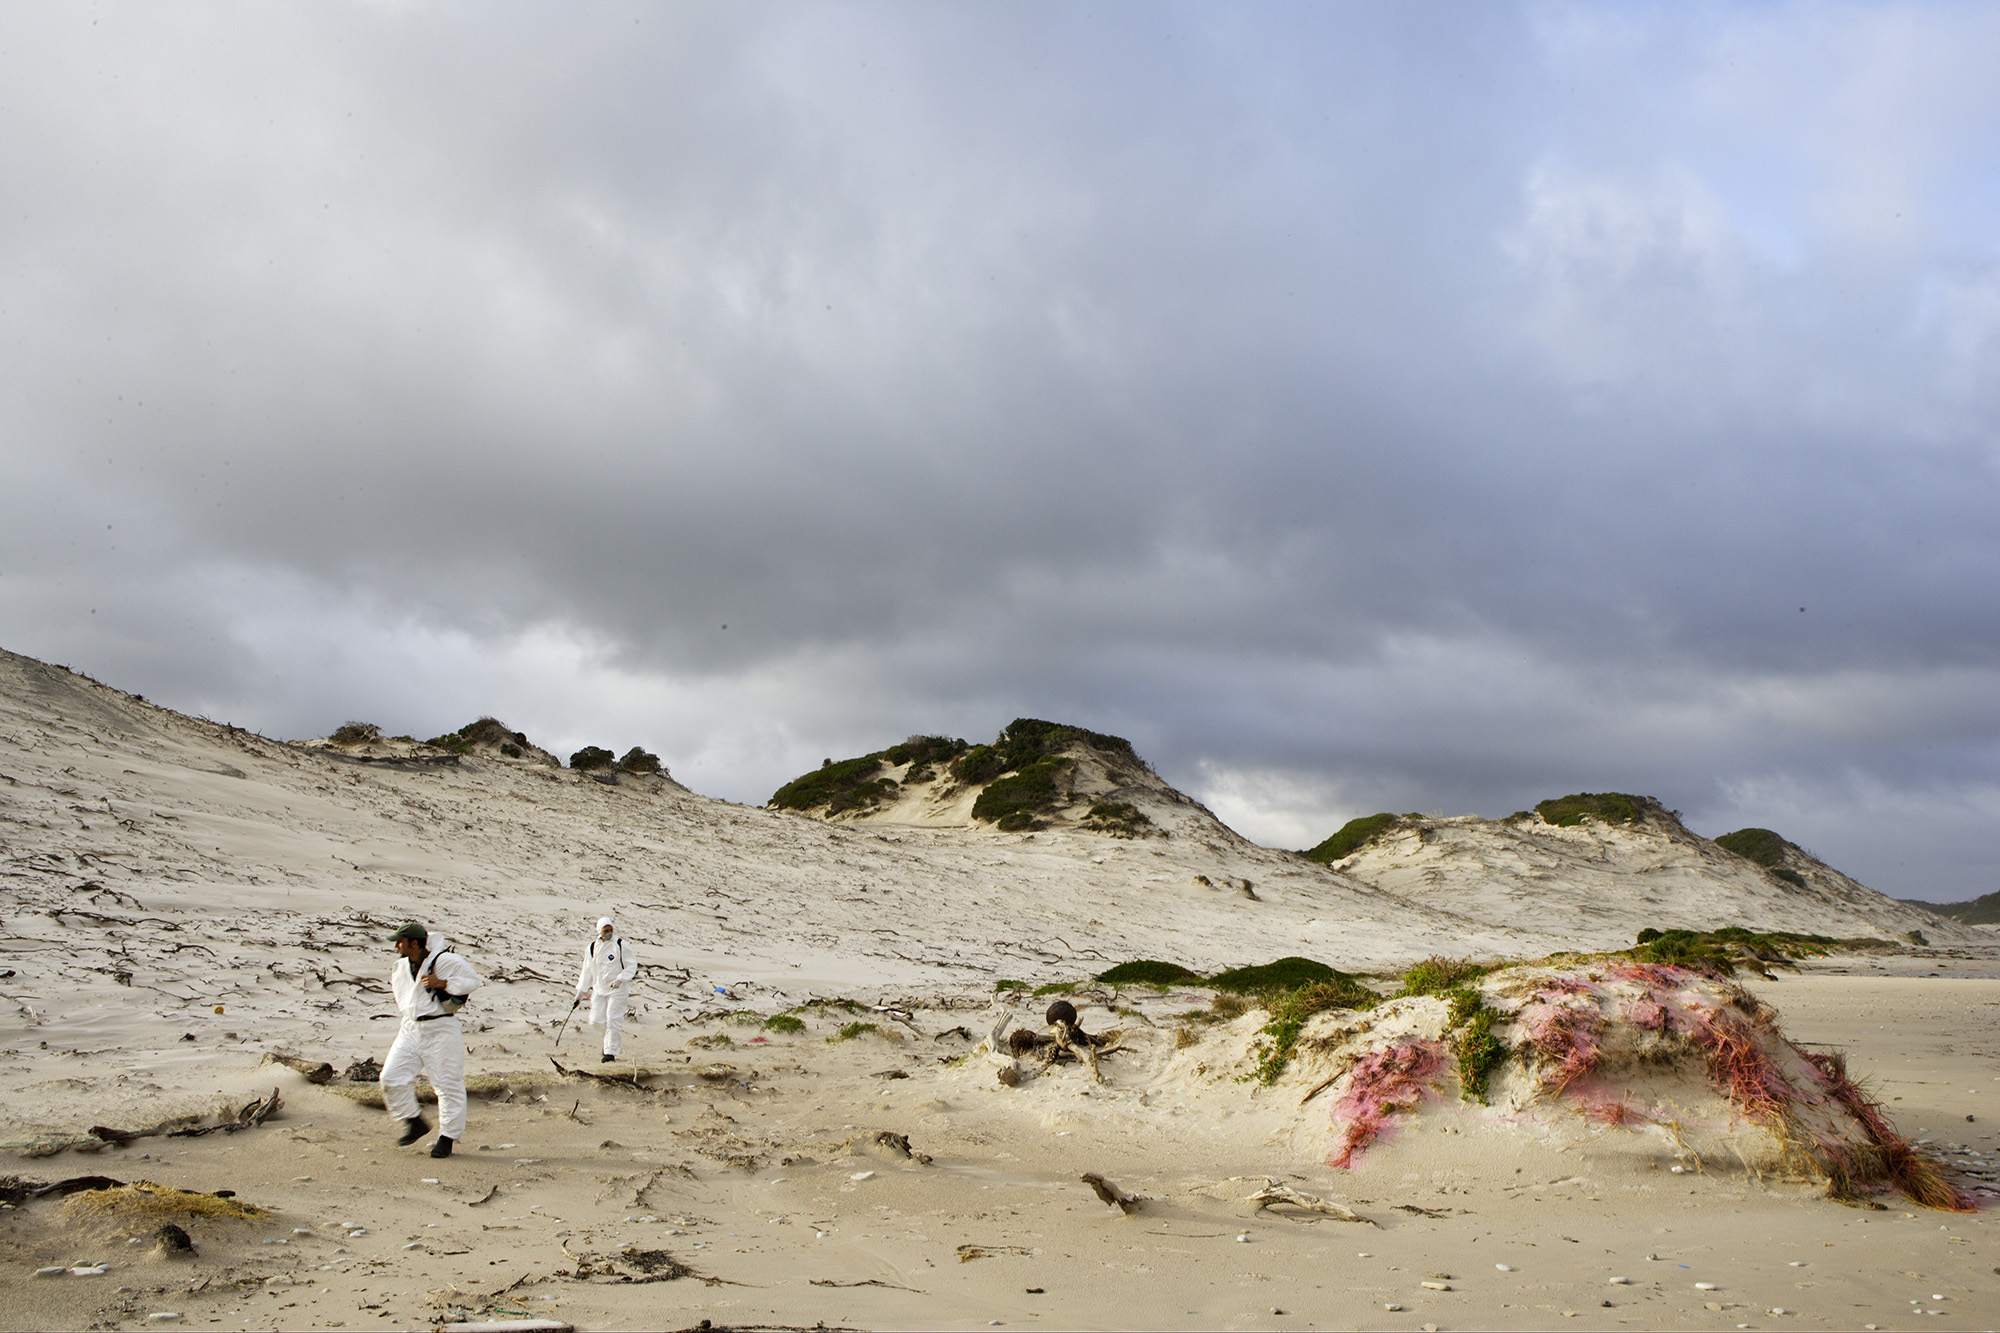 Workers dressed in coveralls apply weed killer to vegetation in the sand dunes on the South Coast Track